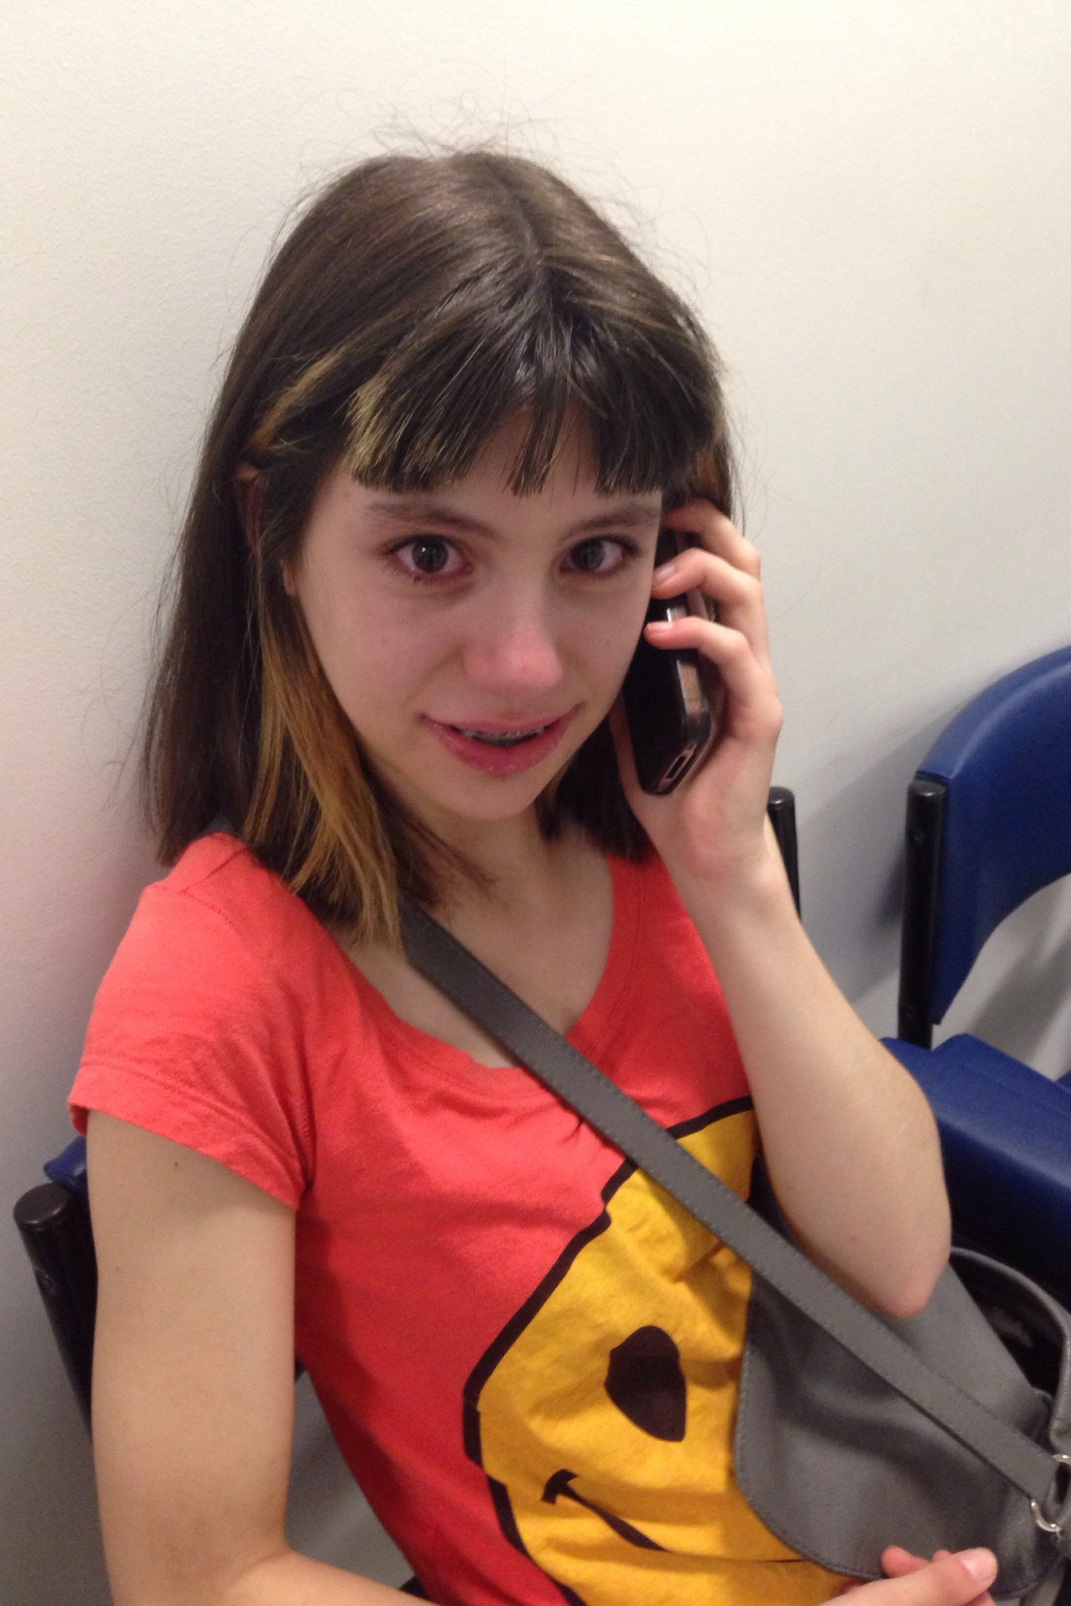 Receiving the phone call from my parents telling her they had donated $1000.